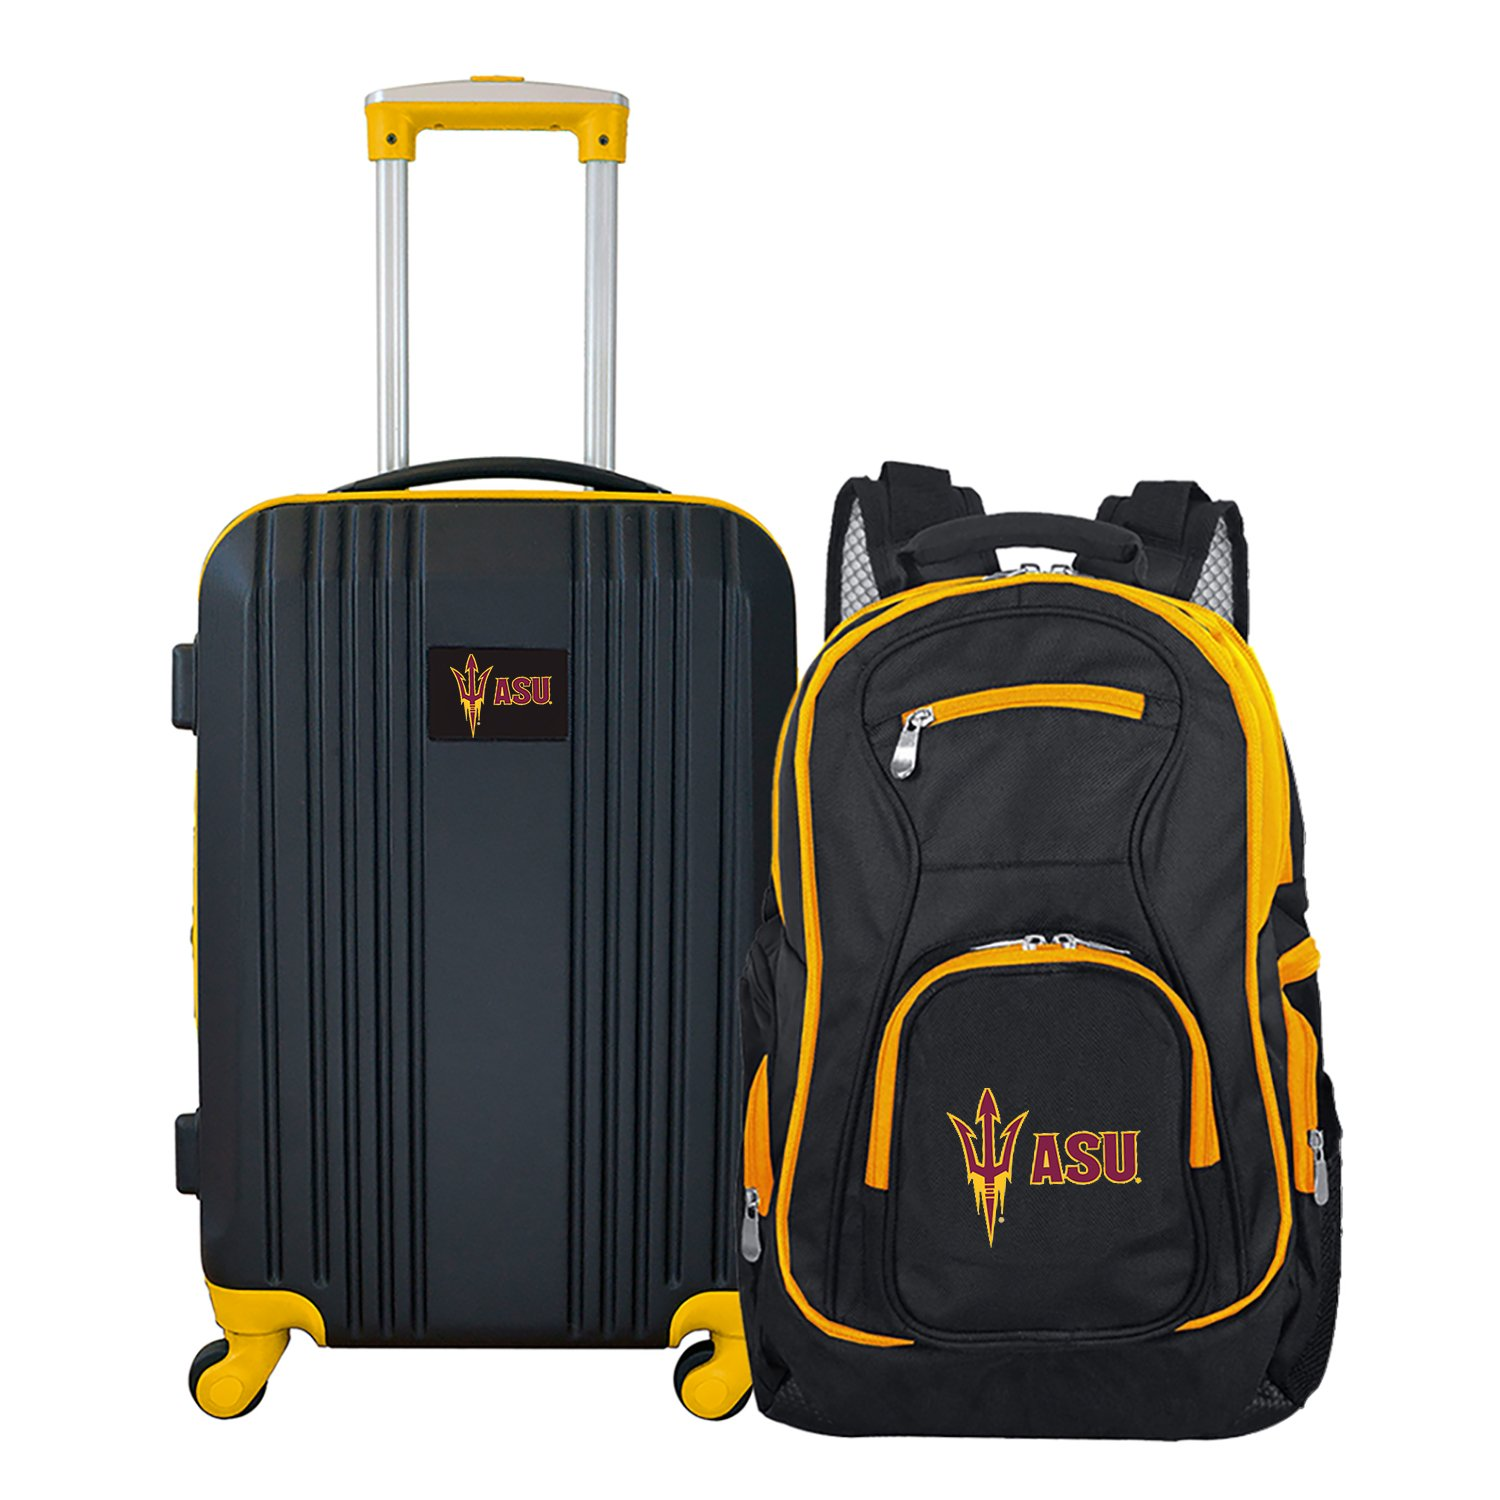 NCAA Arizona State Sun Devils 2-Piece Luggage Set